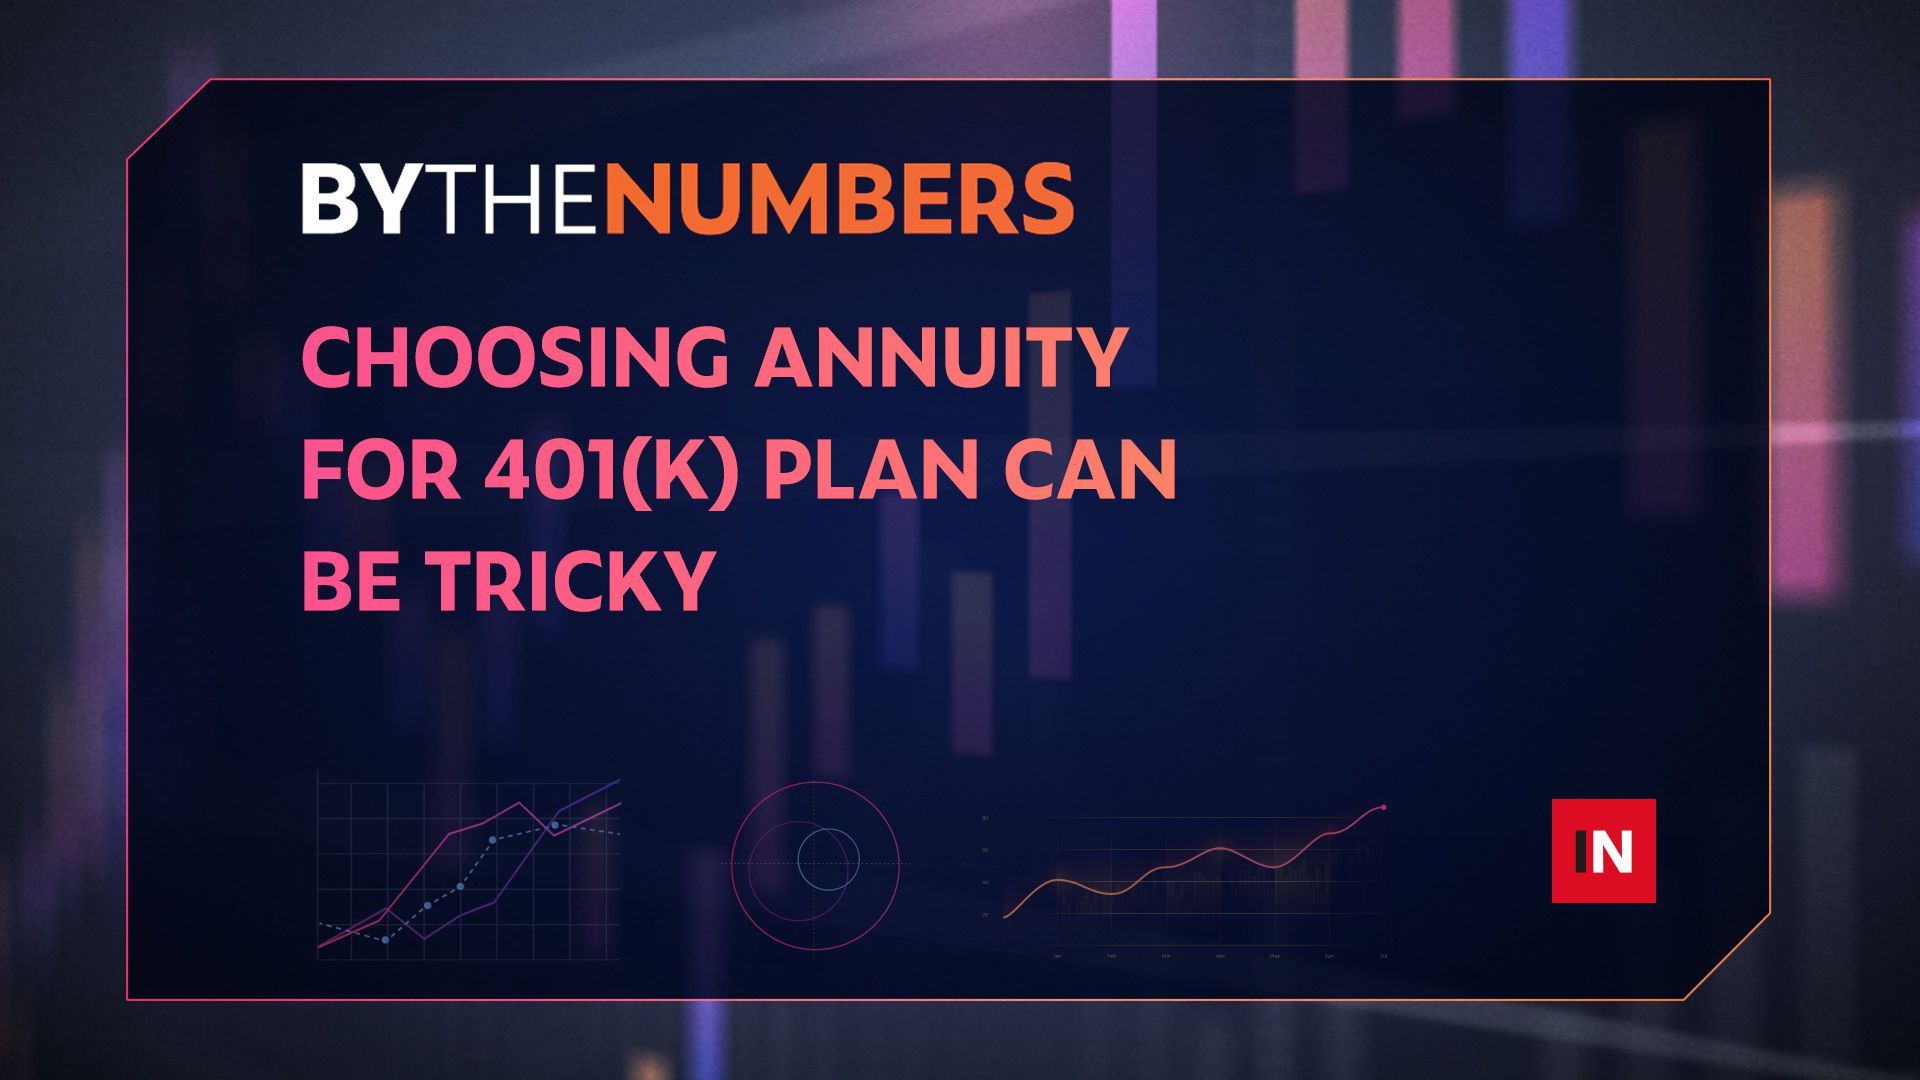 Choosing annuity for 401(k) plan can be tricky